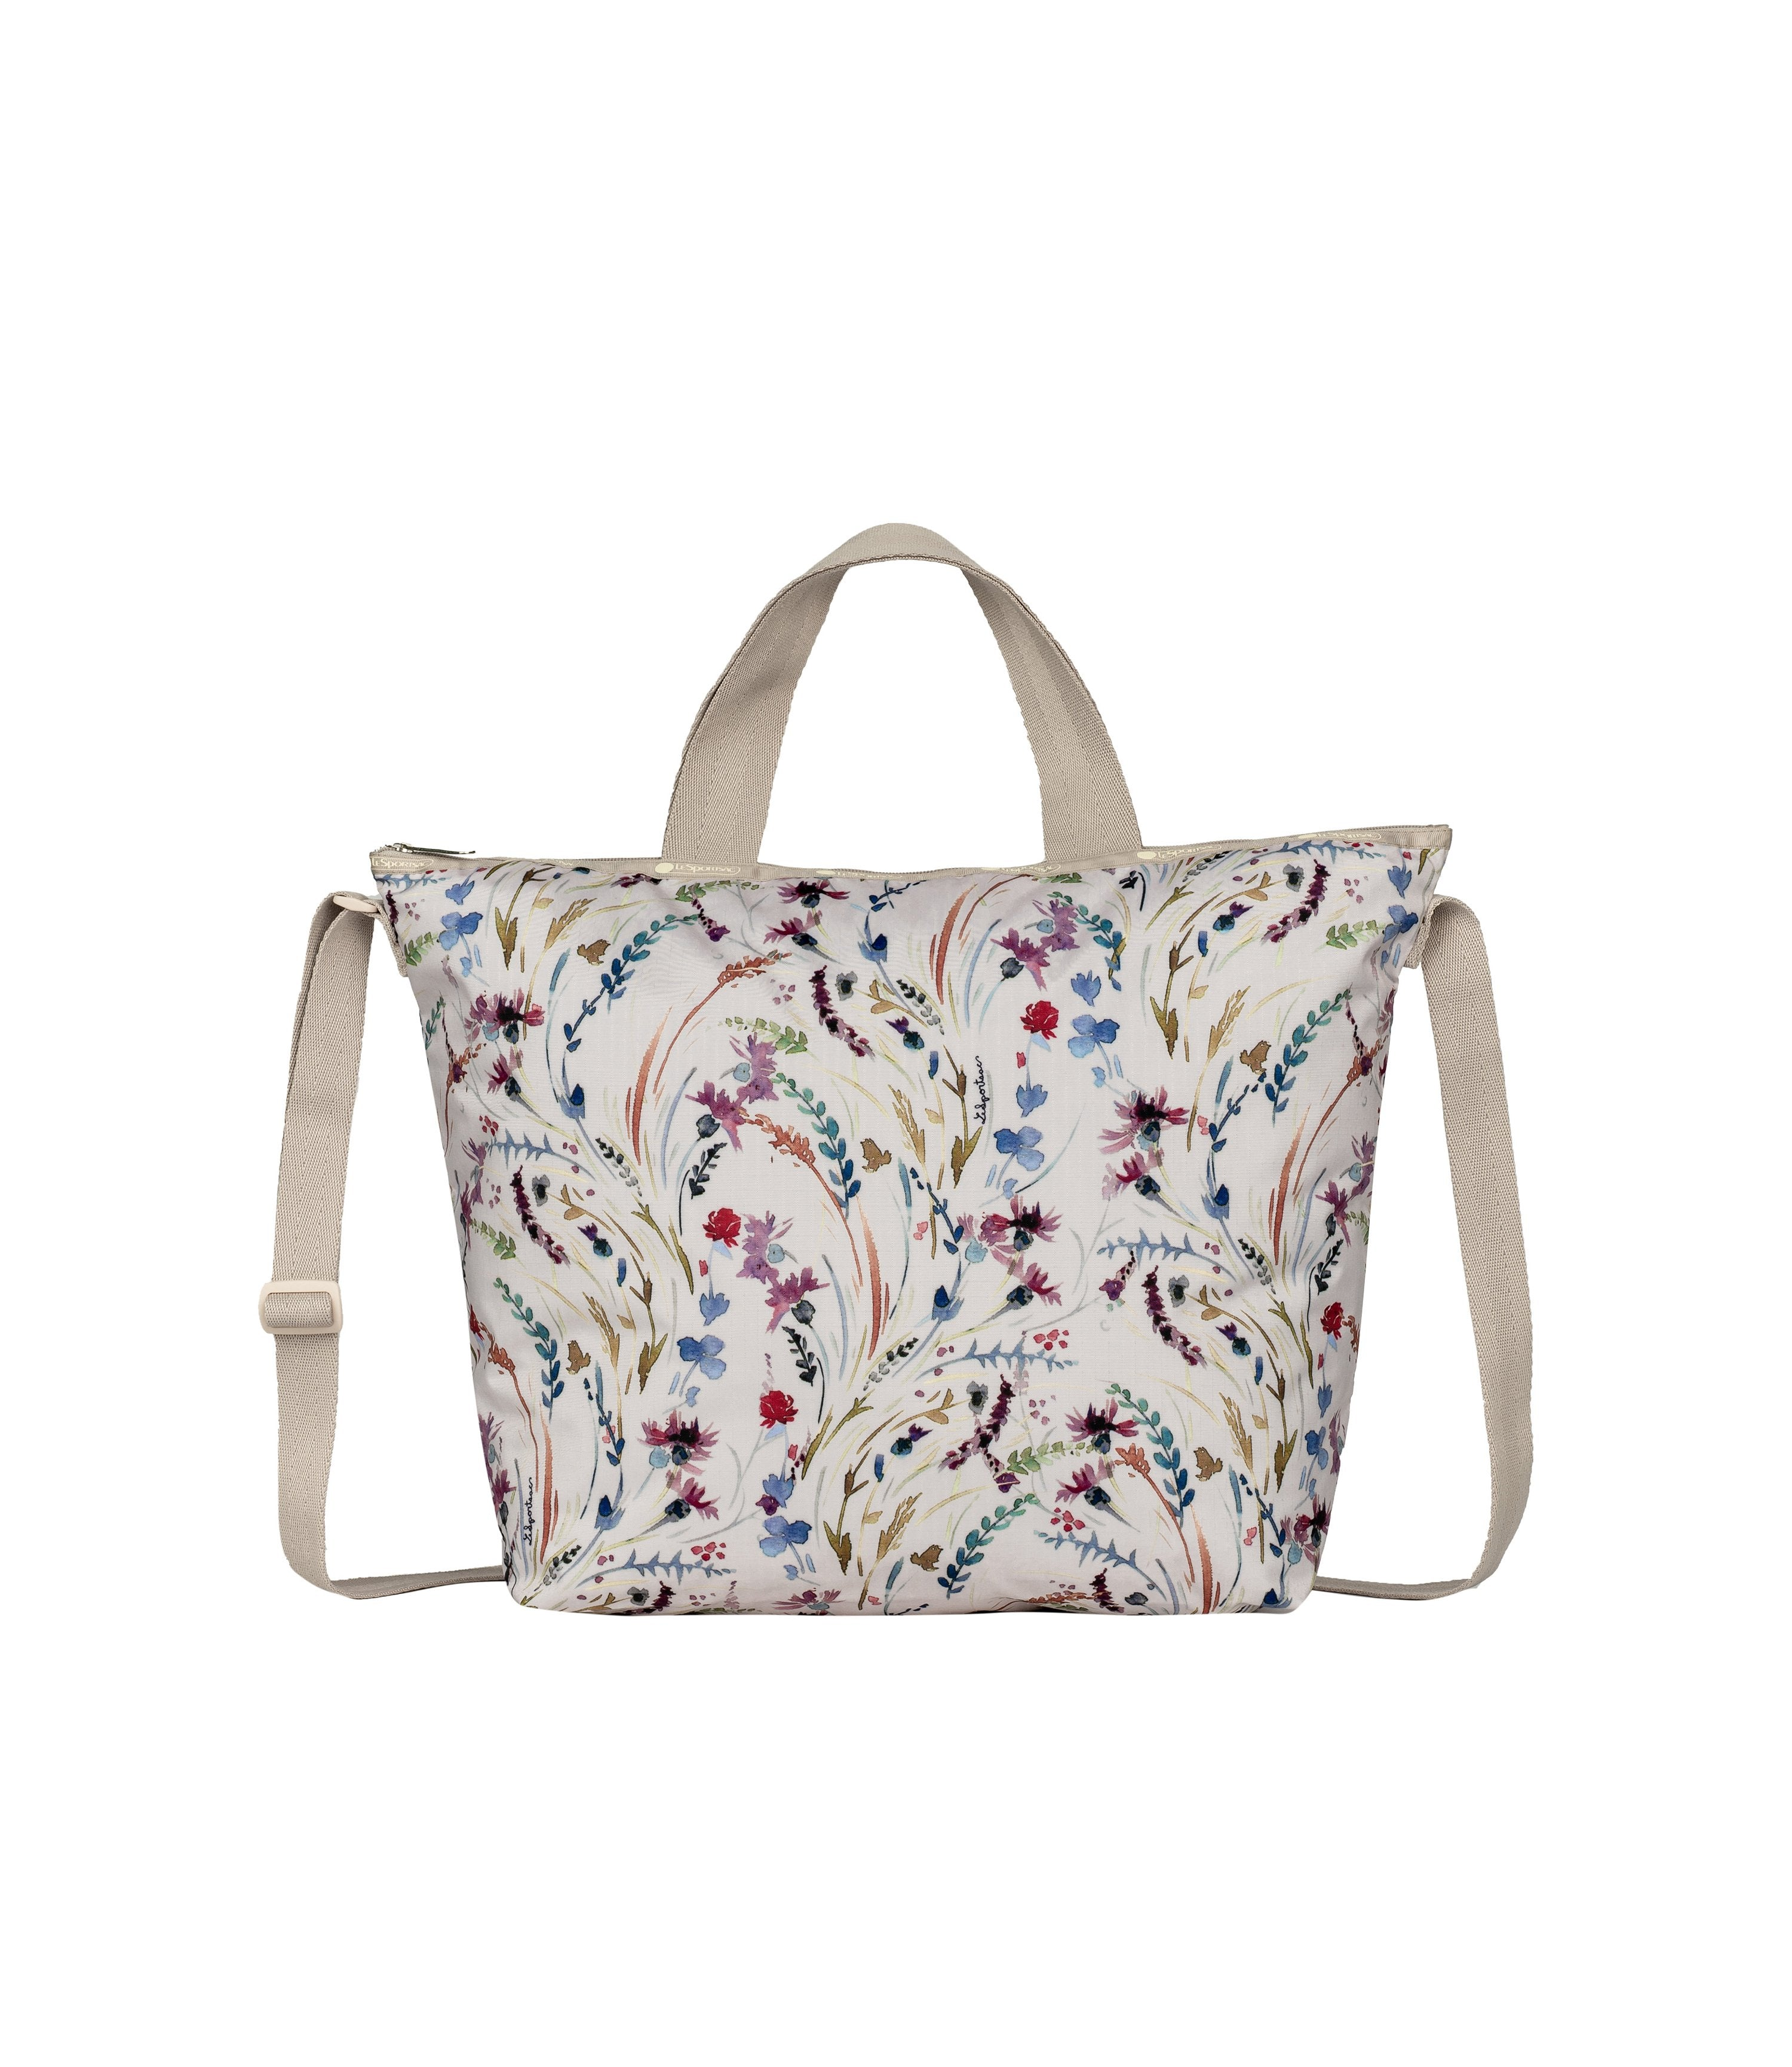 LeSportsac - Totes - Deluxe Easy Carry Tote - Windswept Floral print